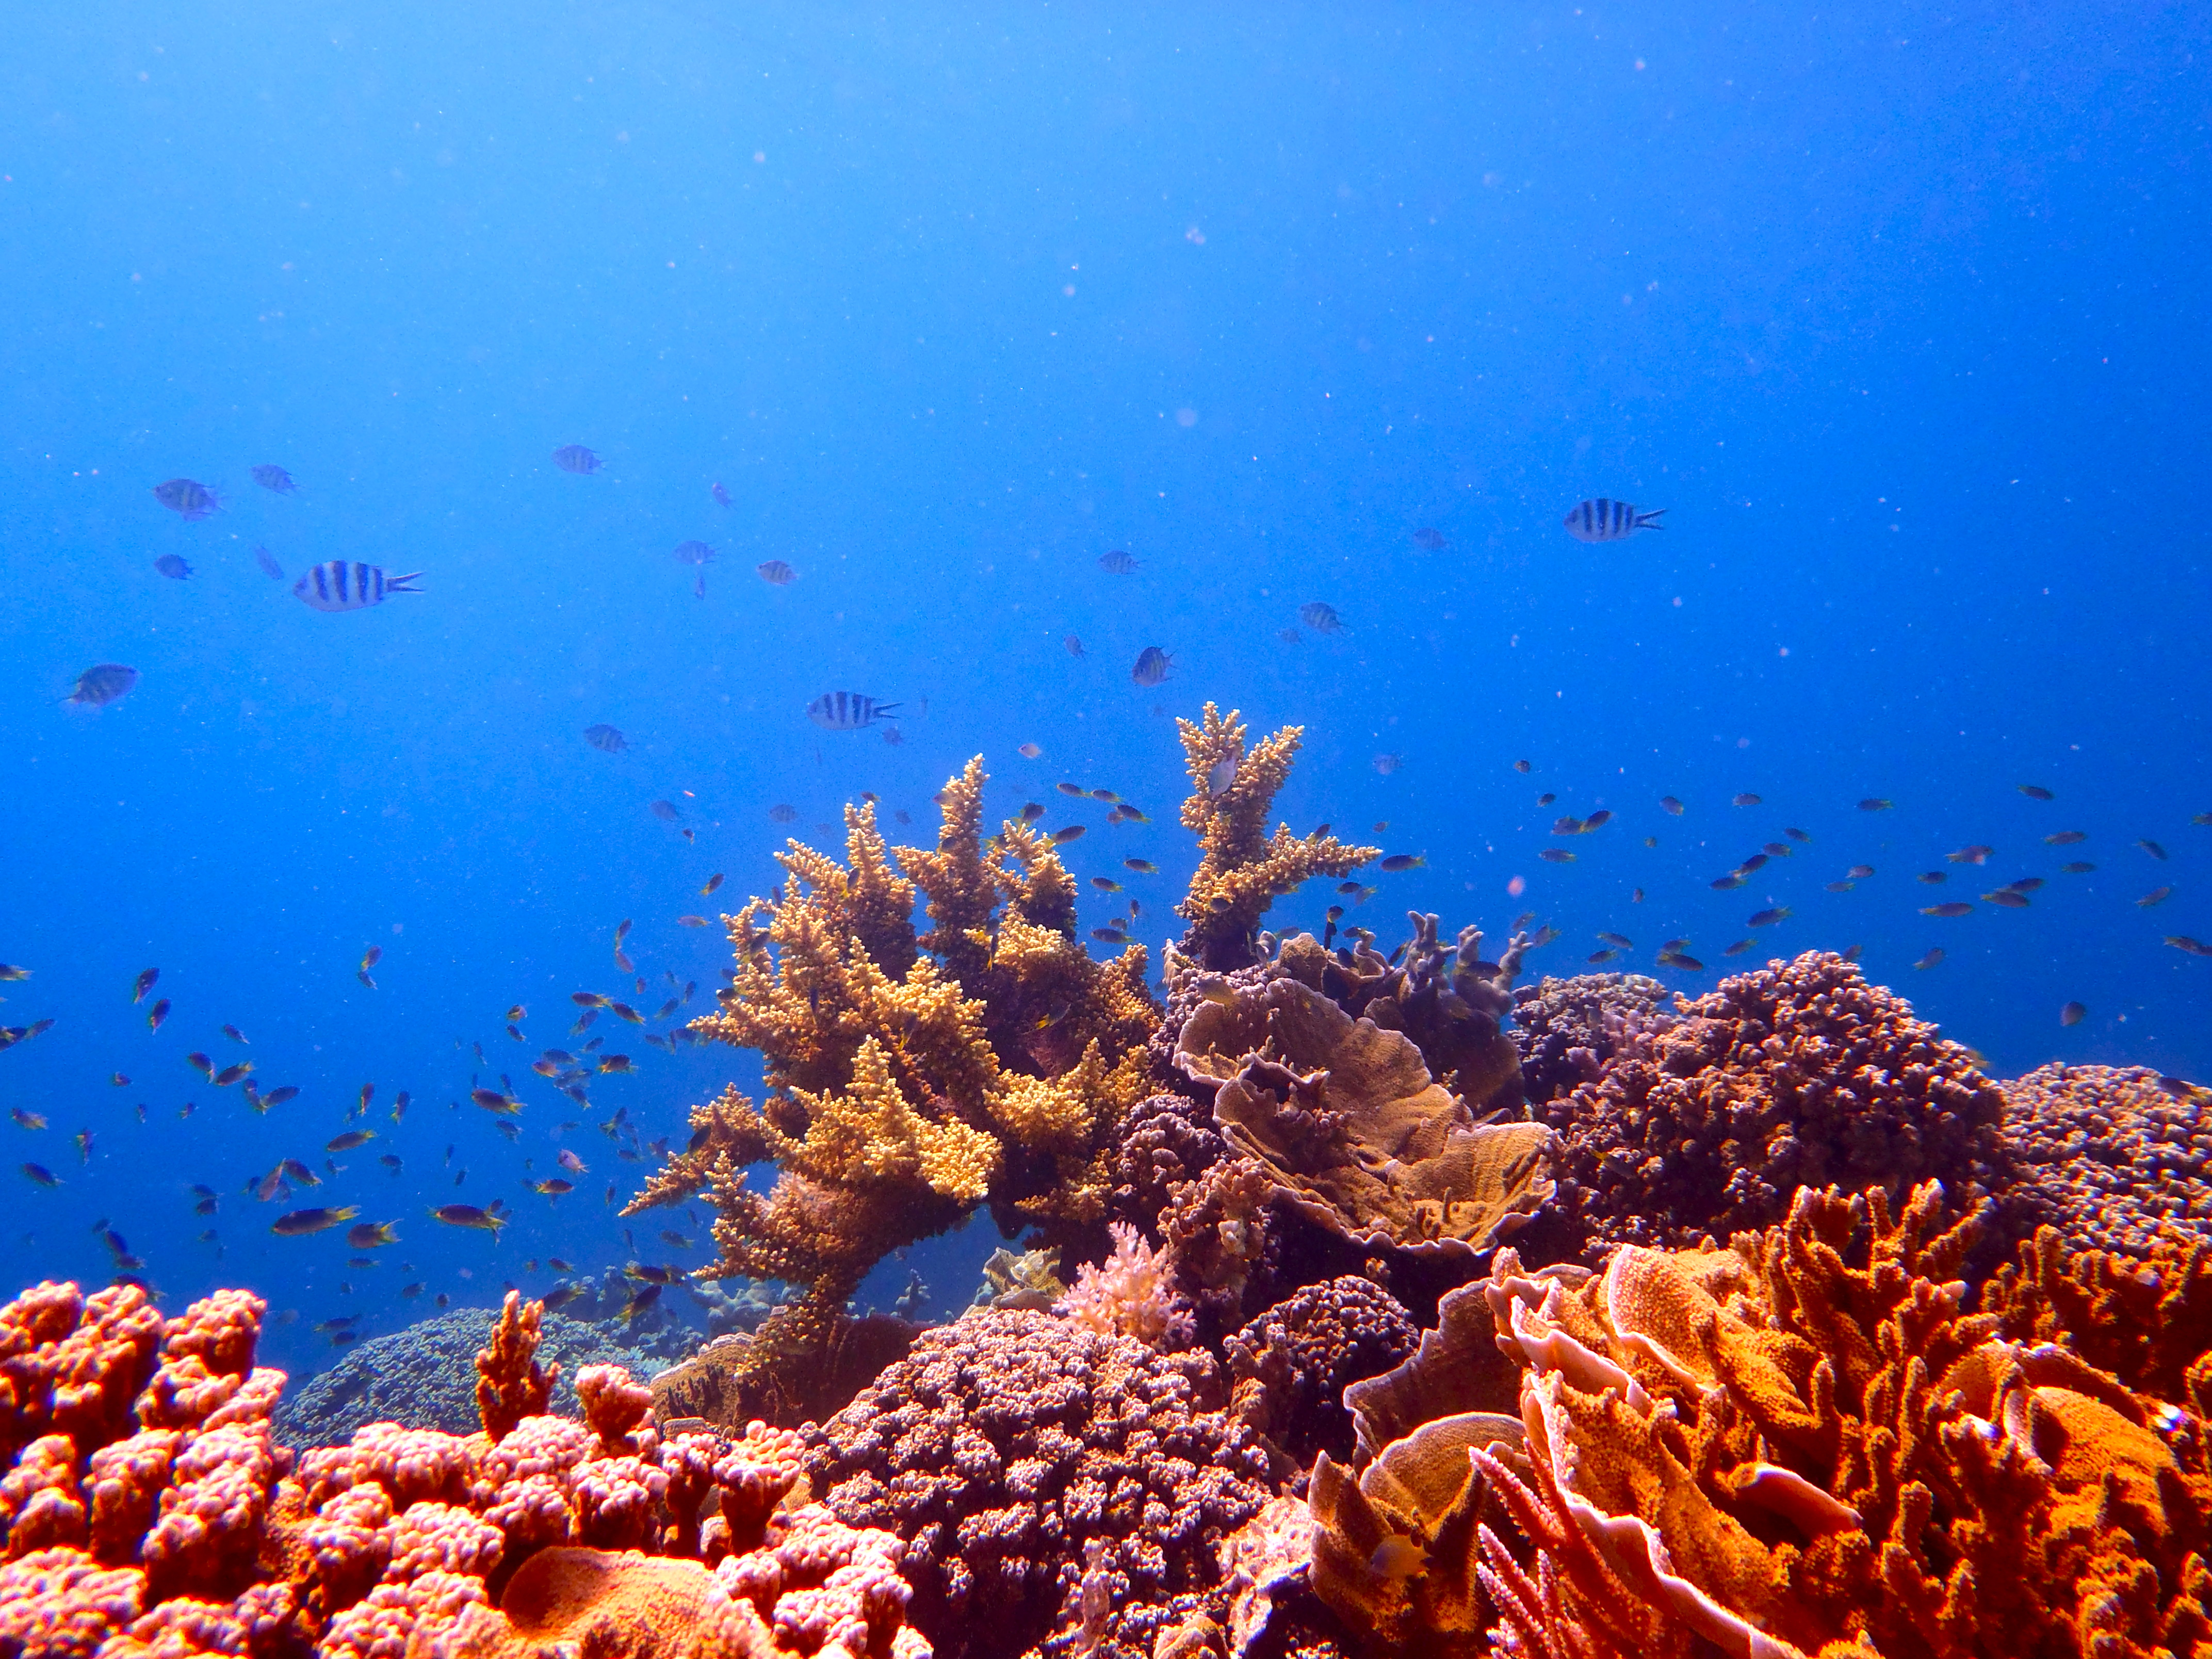 Diverse coral communities persist, but bioerosion escalates in